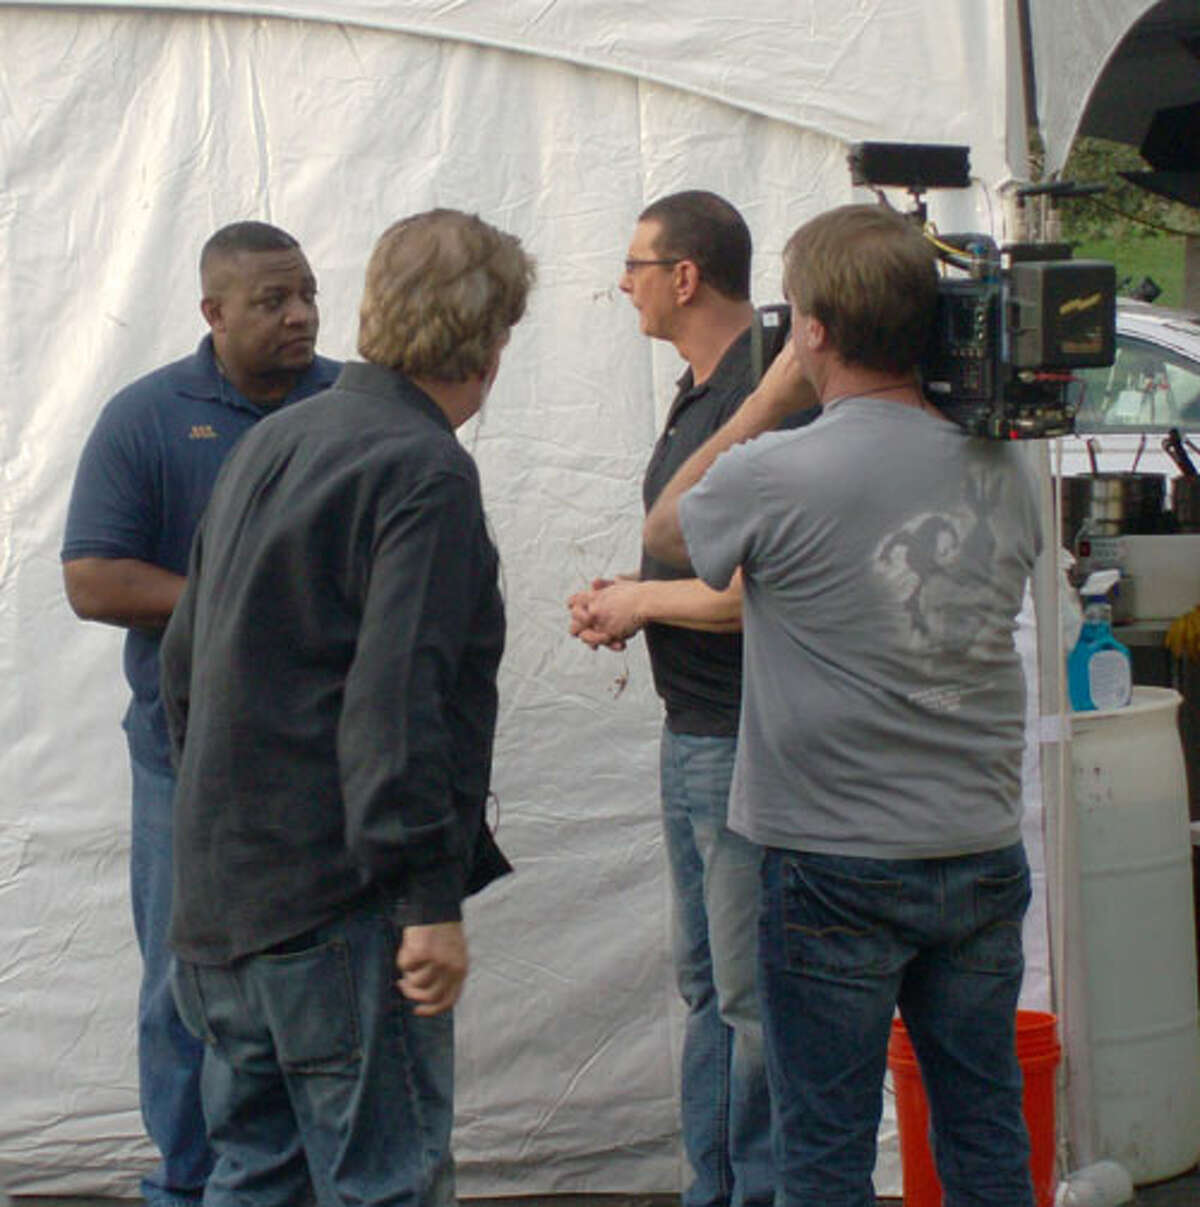 Mama Lee's Soul Food restaurant owner Ken Lee (far left) listens to advice from TV celebrity chef Robert Irvine (rear right) Monday as television crew members tape the exchange for broadcast on Irvine's